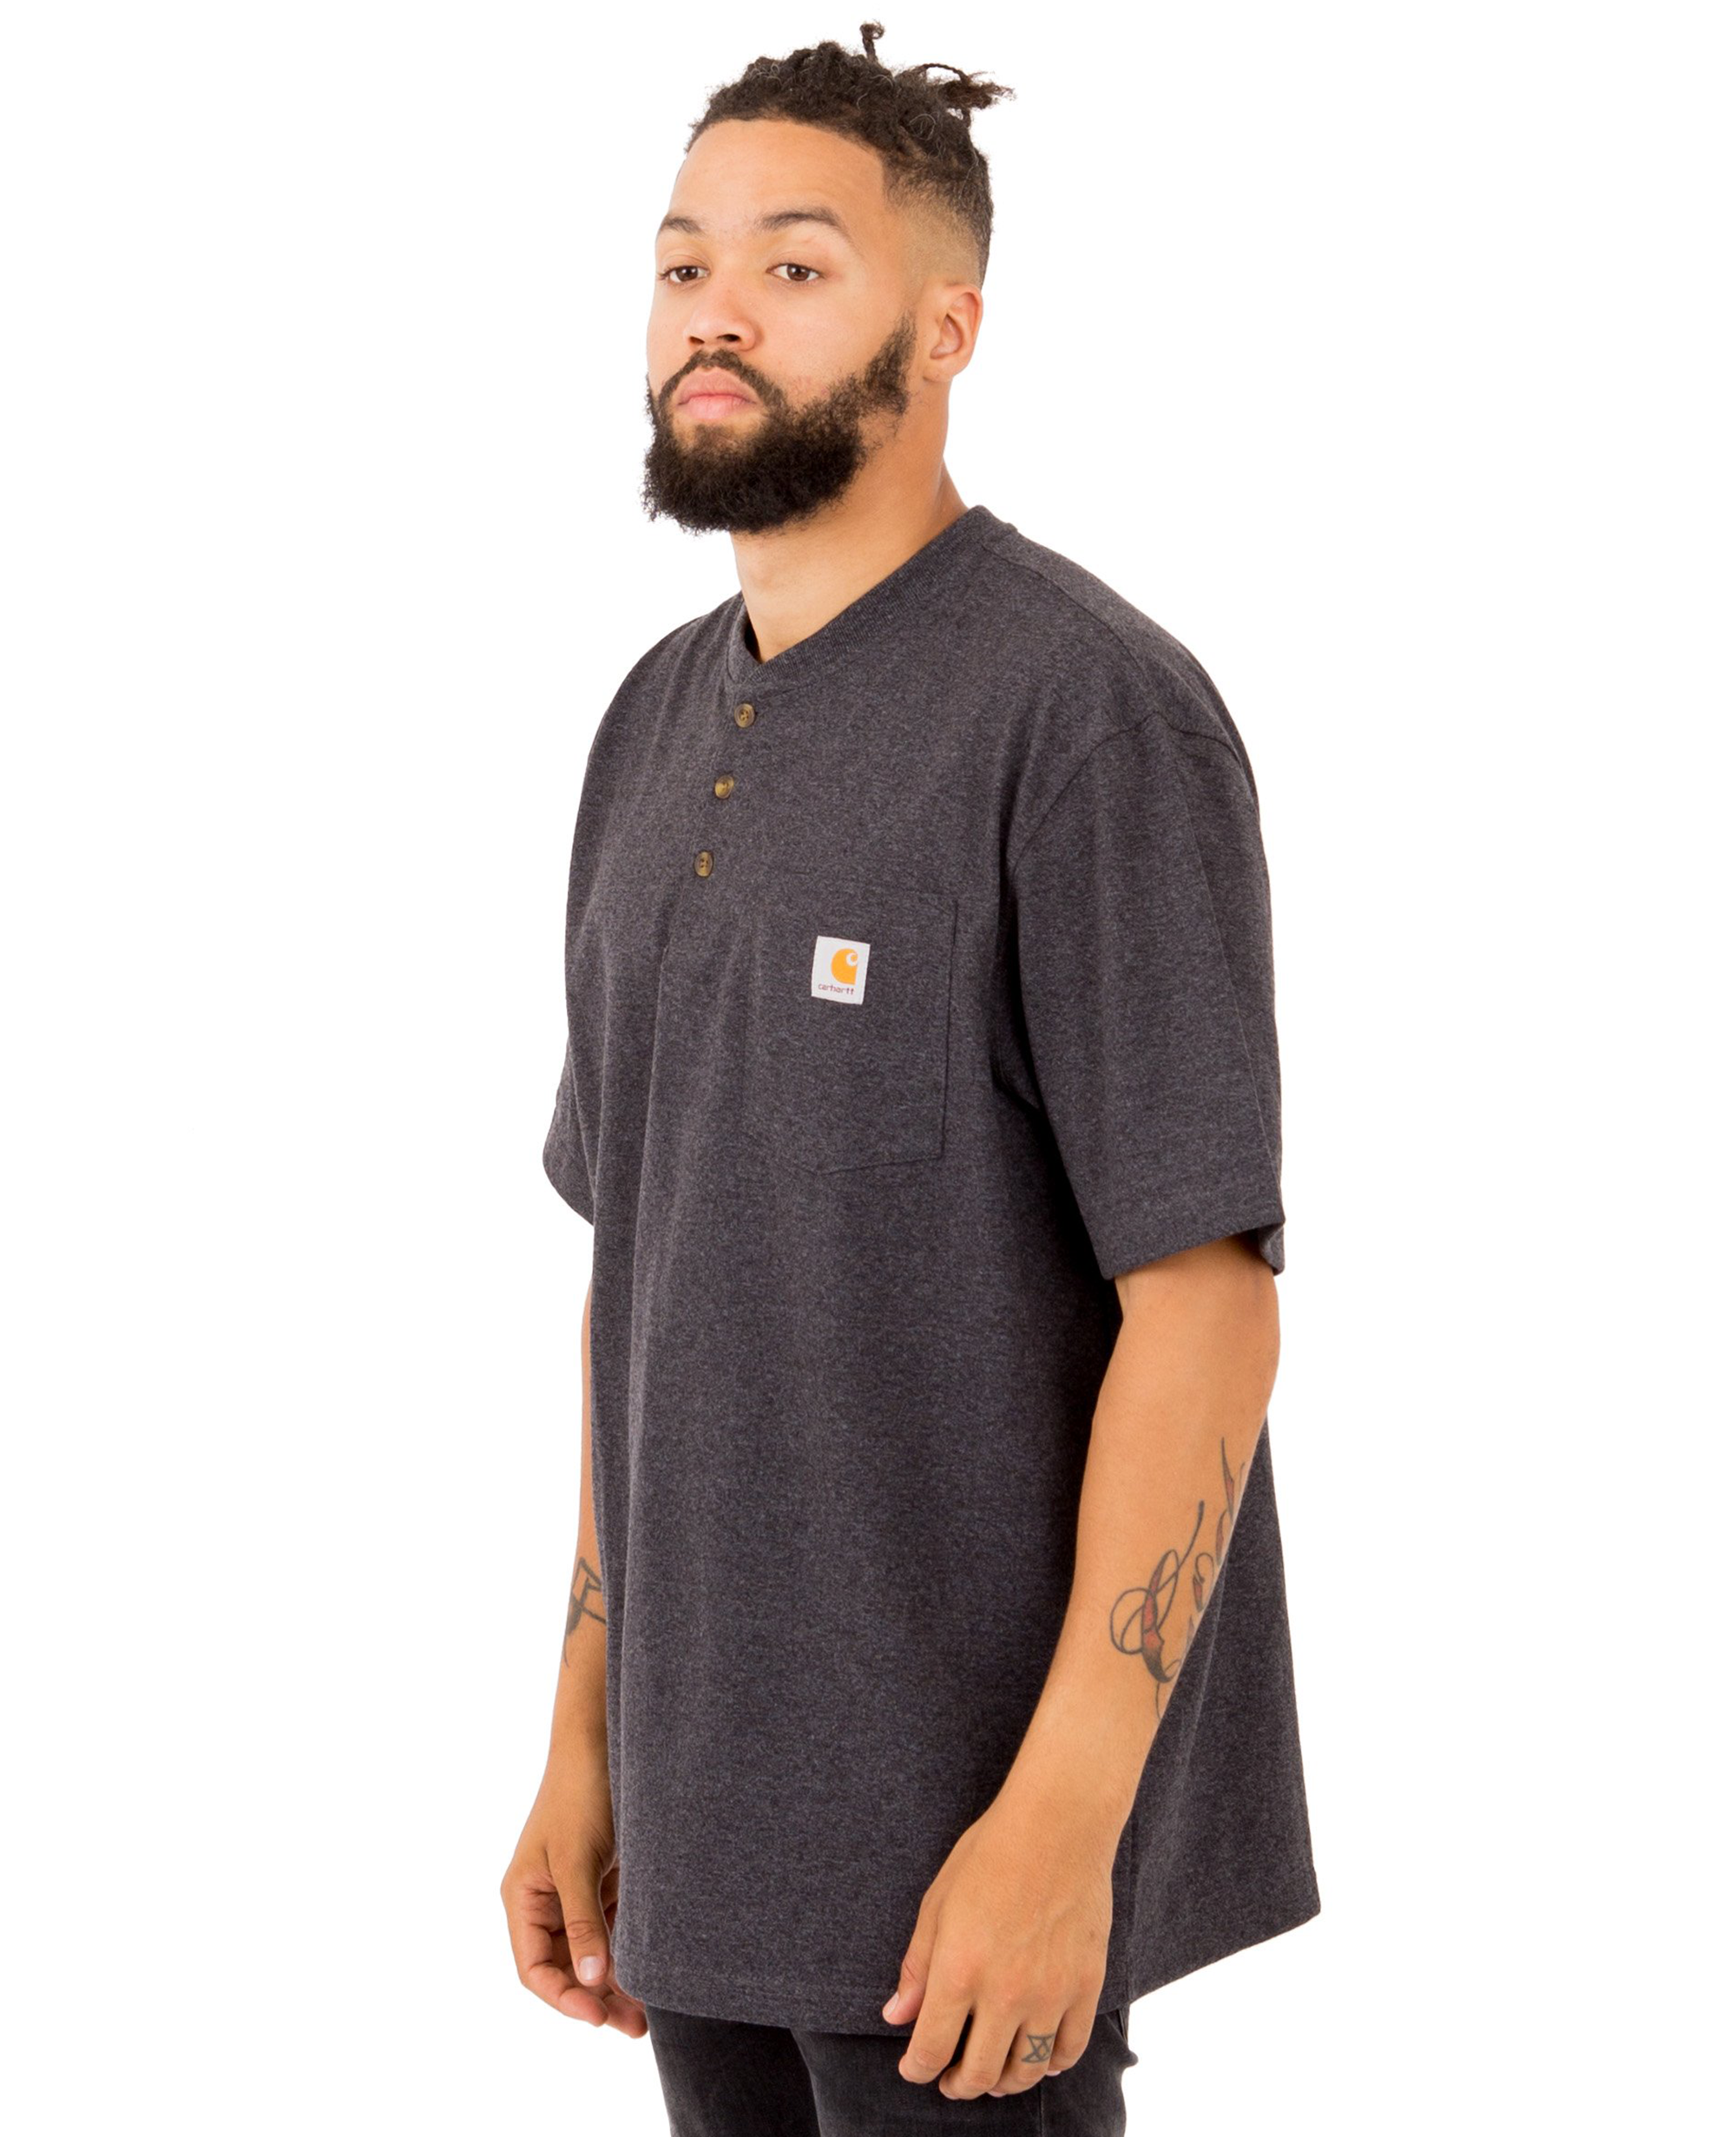 Heavyweight Henley T-shirt in Carbon Heather - T-Shirts - Carhartt WIP - BRANMA